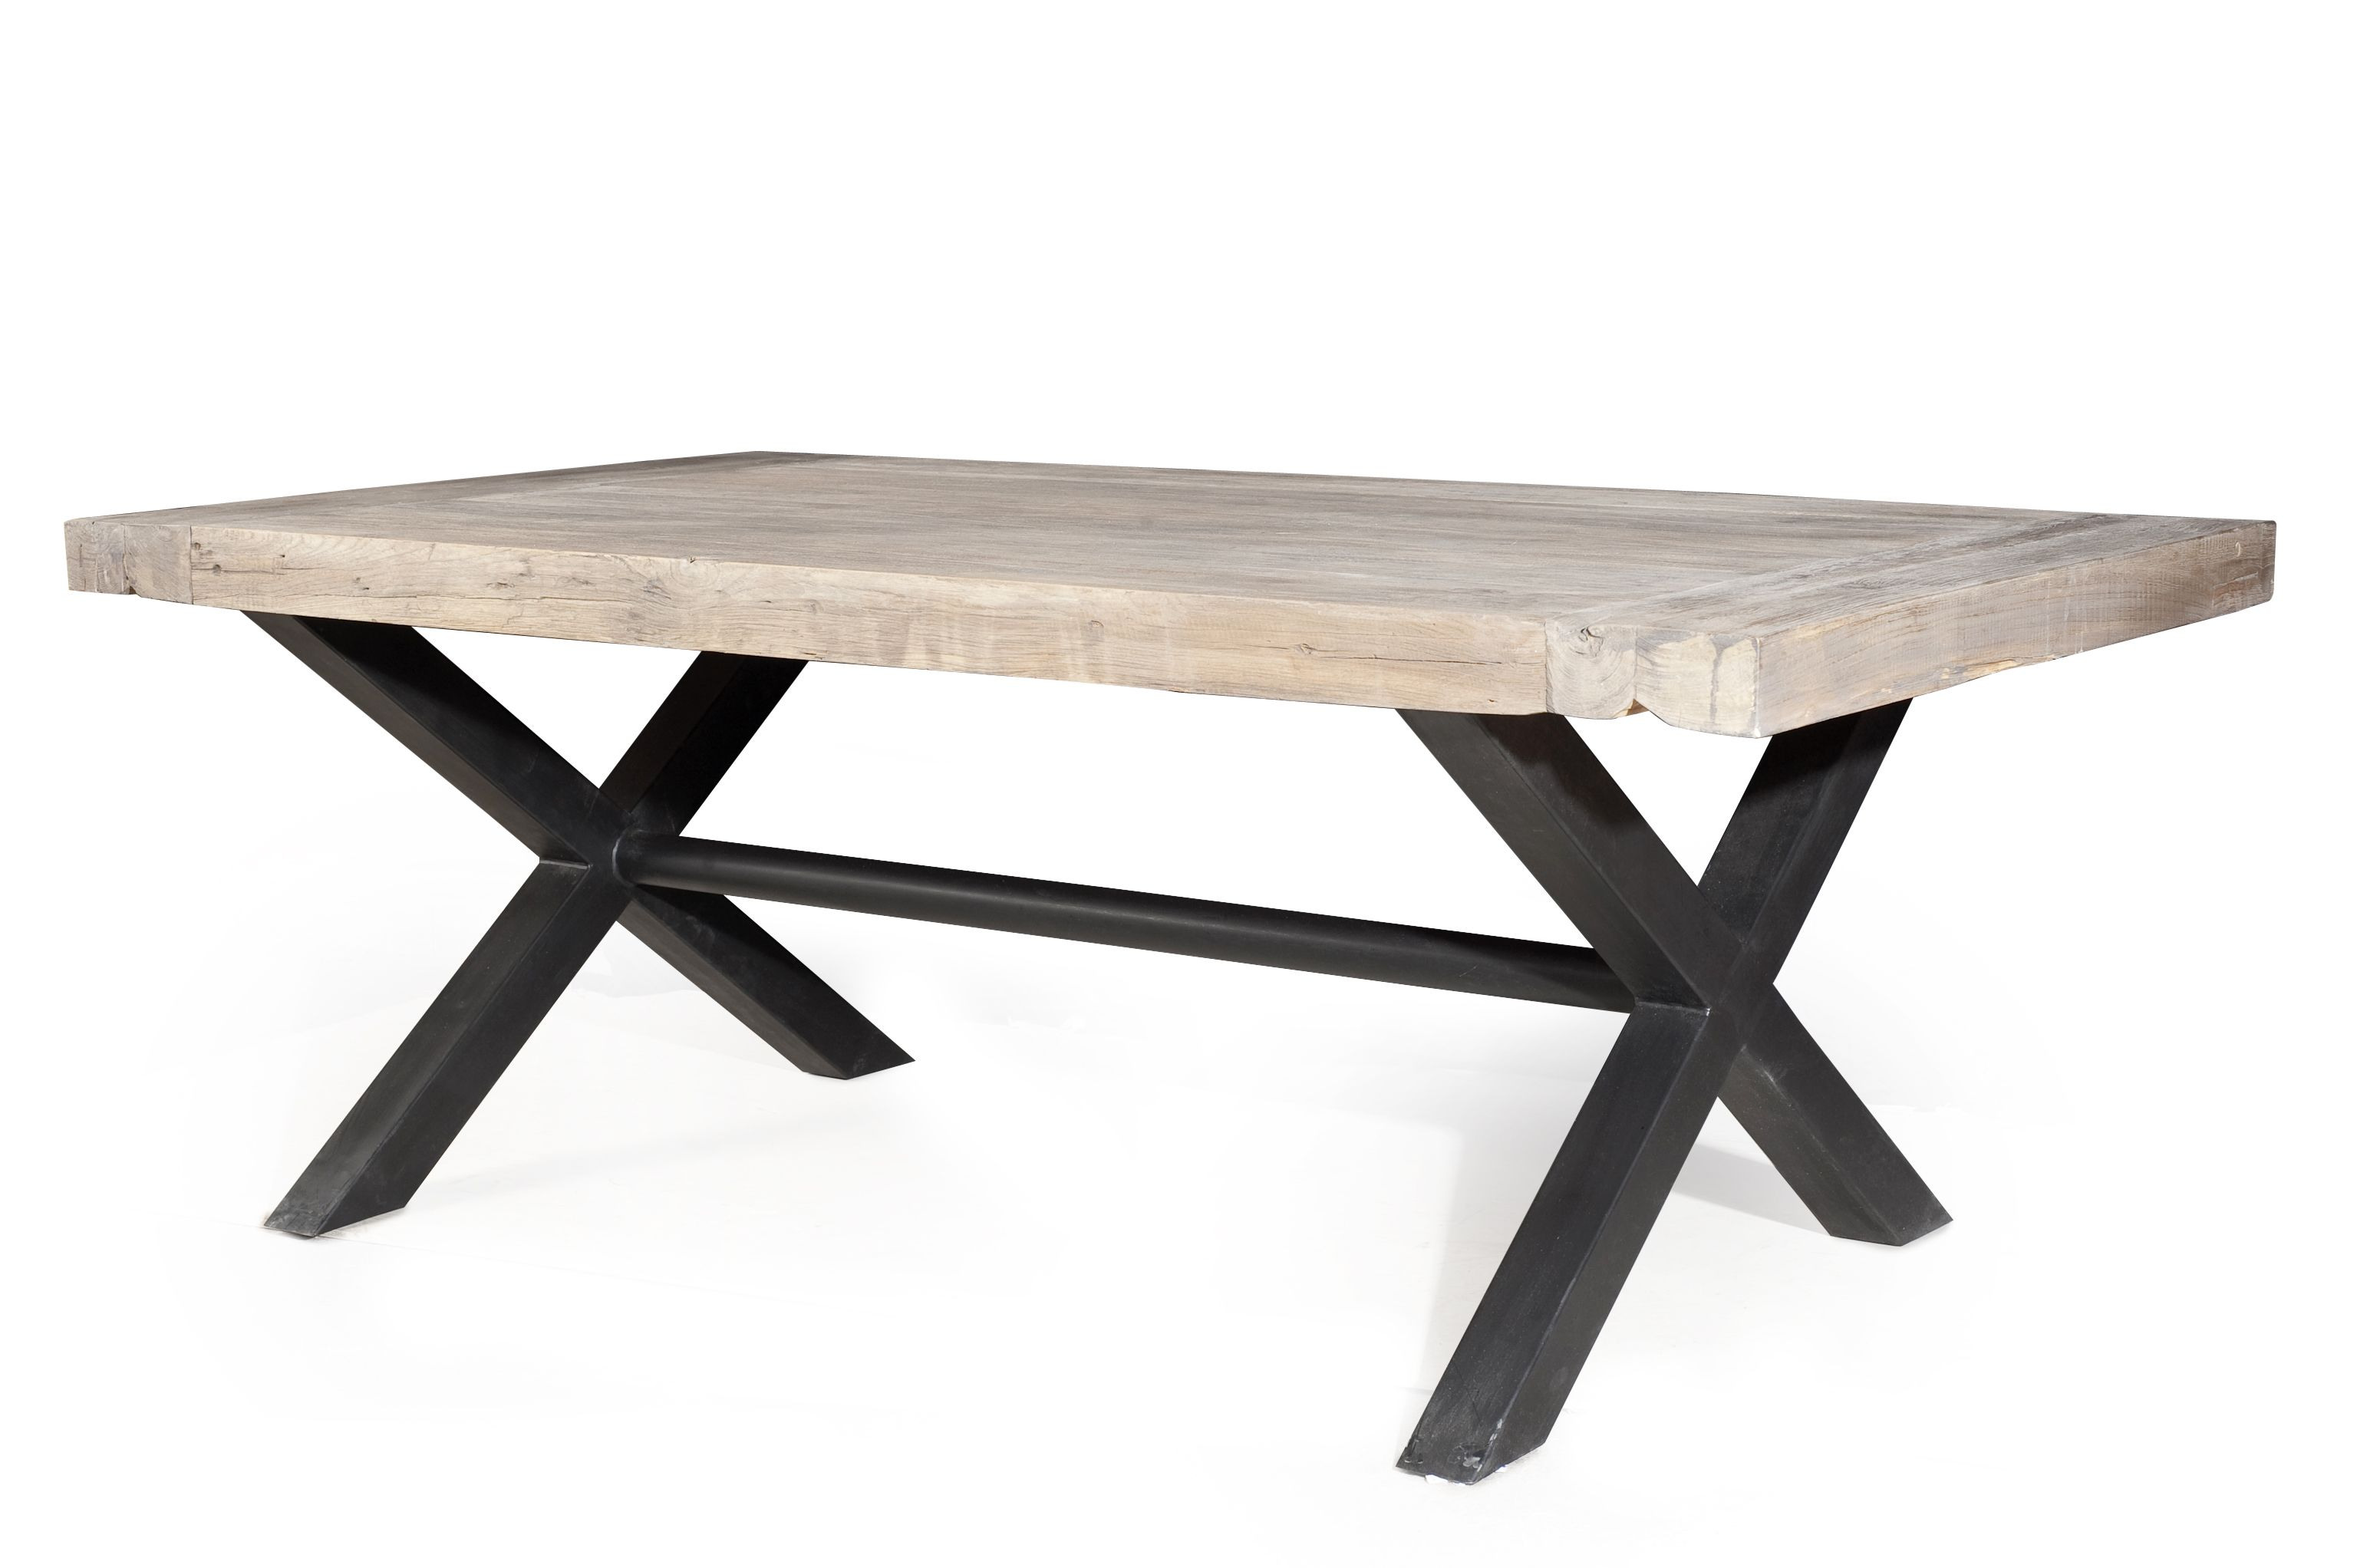 Comparatif table a manger fer forge et bois maison for Pietement de table en bois